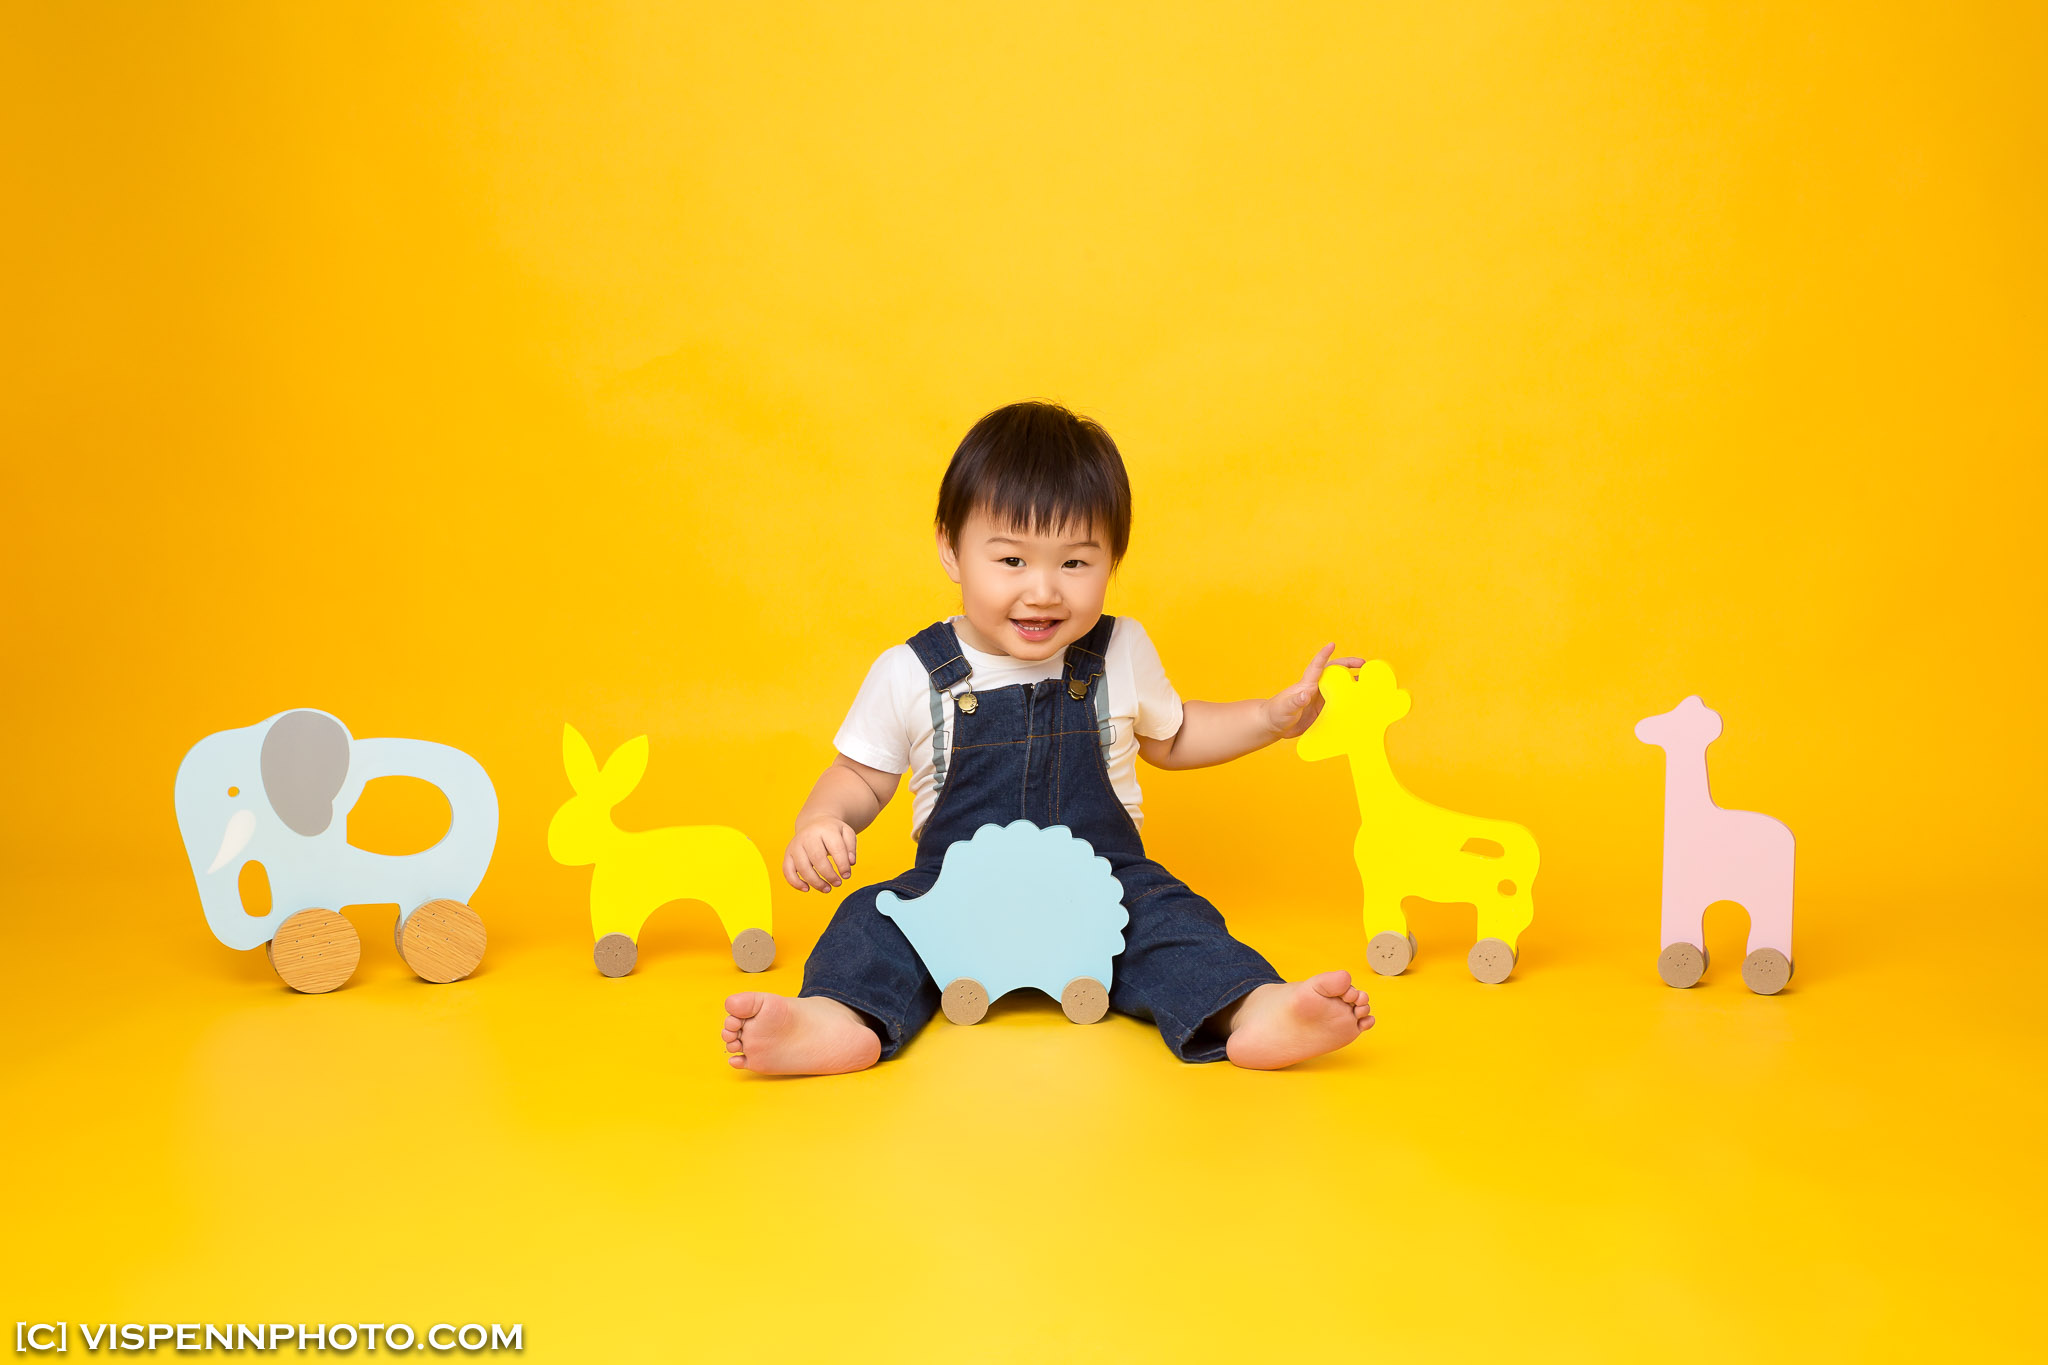 Melbourne Newborn Baby Family Photo BaoBao VISPENN 墨尔本 儿童 宝宝 百天照 满月照 孕妇照 全家福 KIDS AbbyHUANG 2029 VISPENN